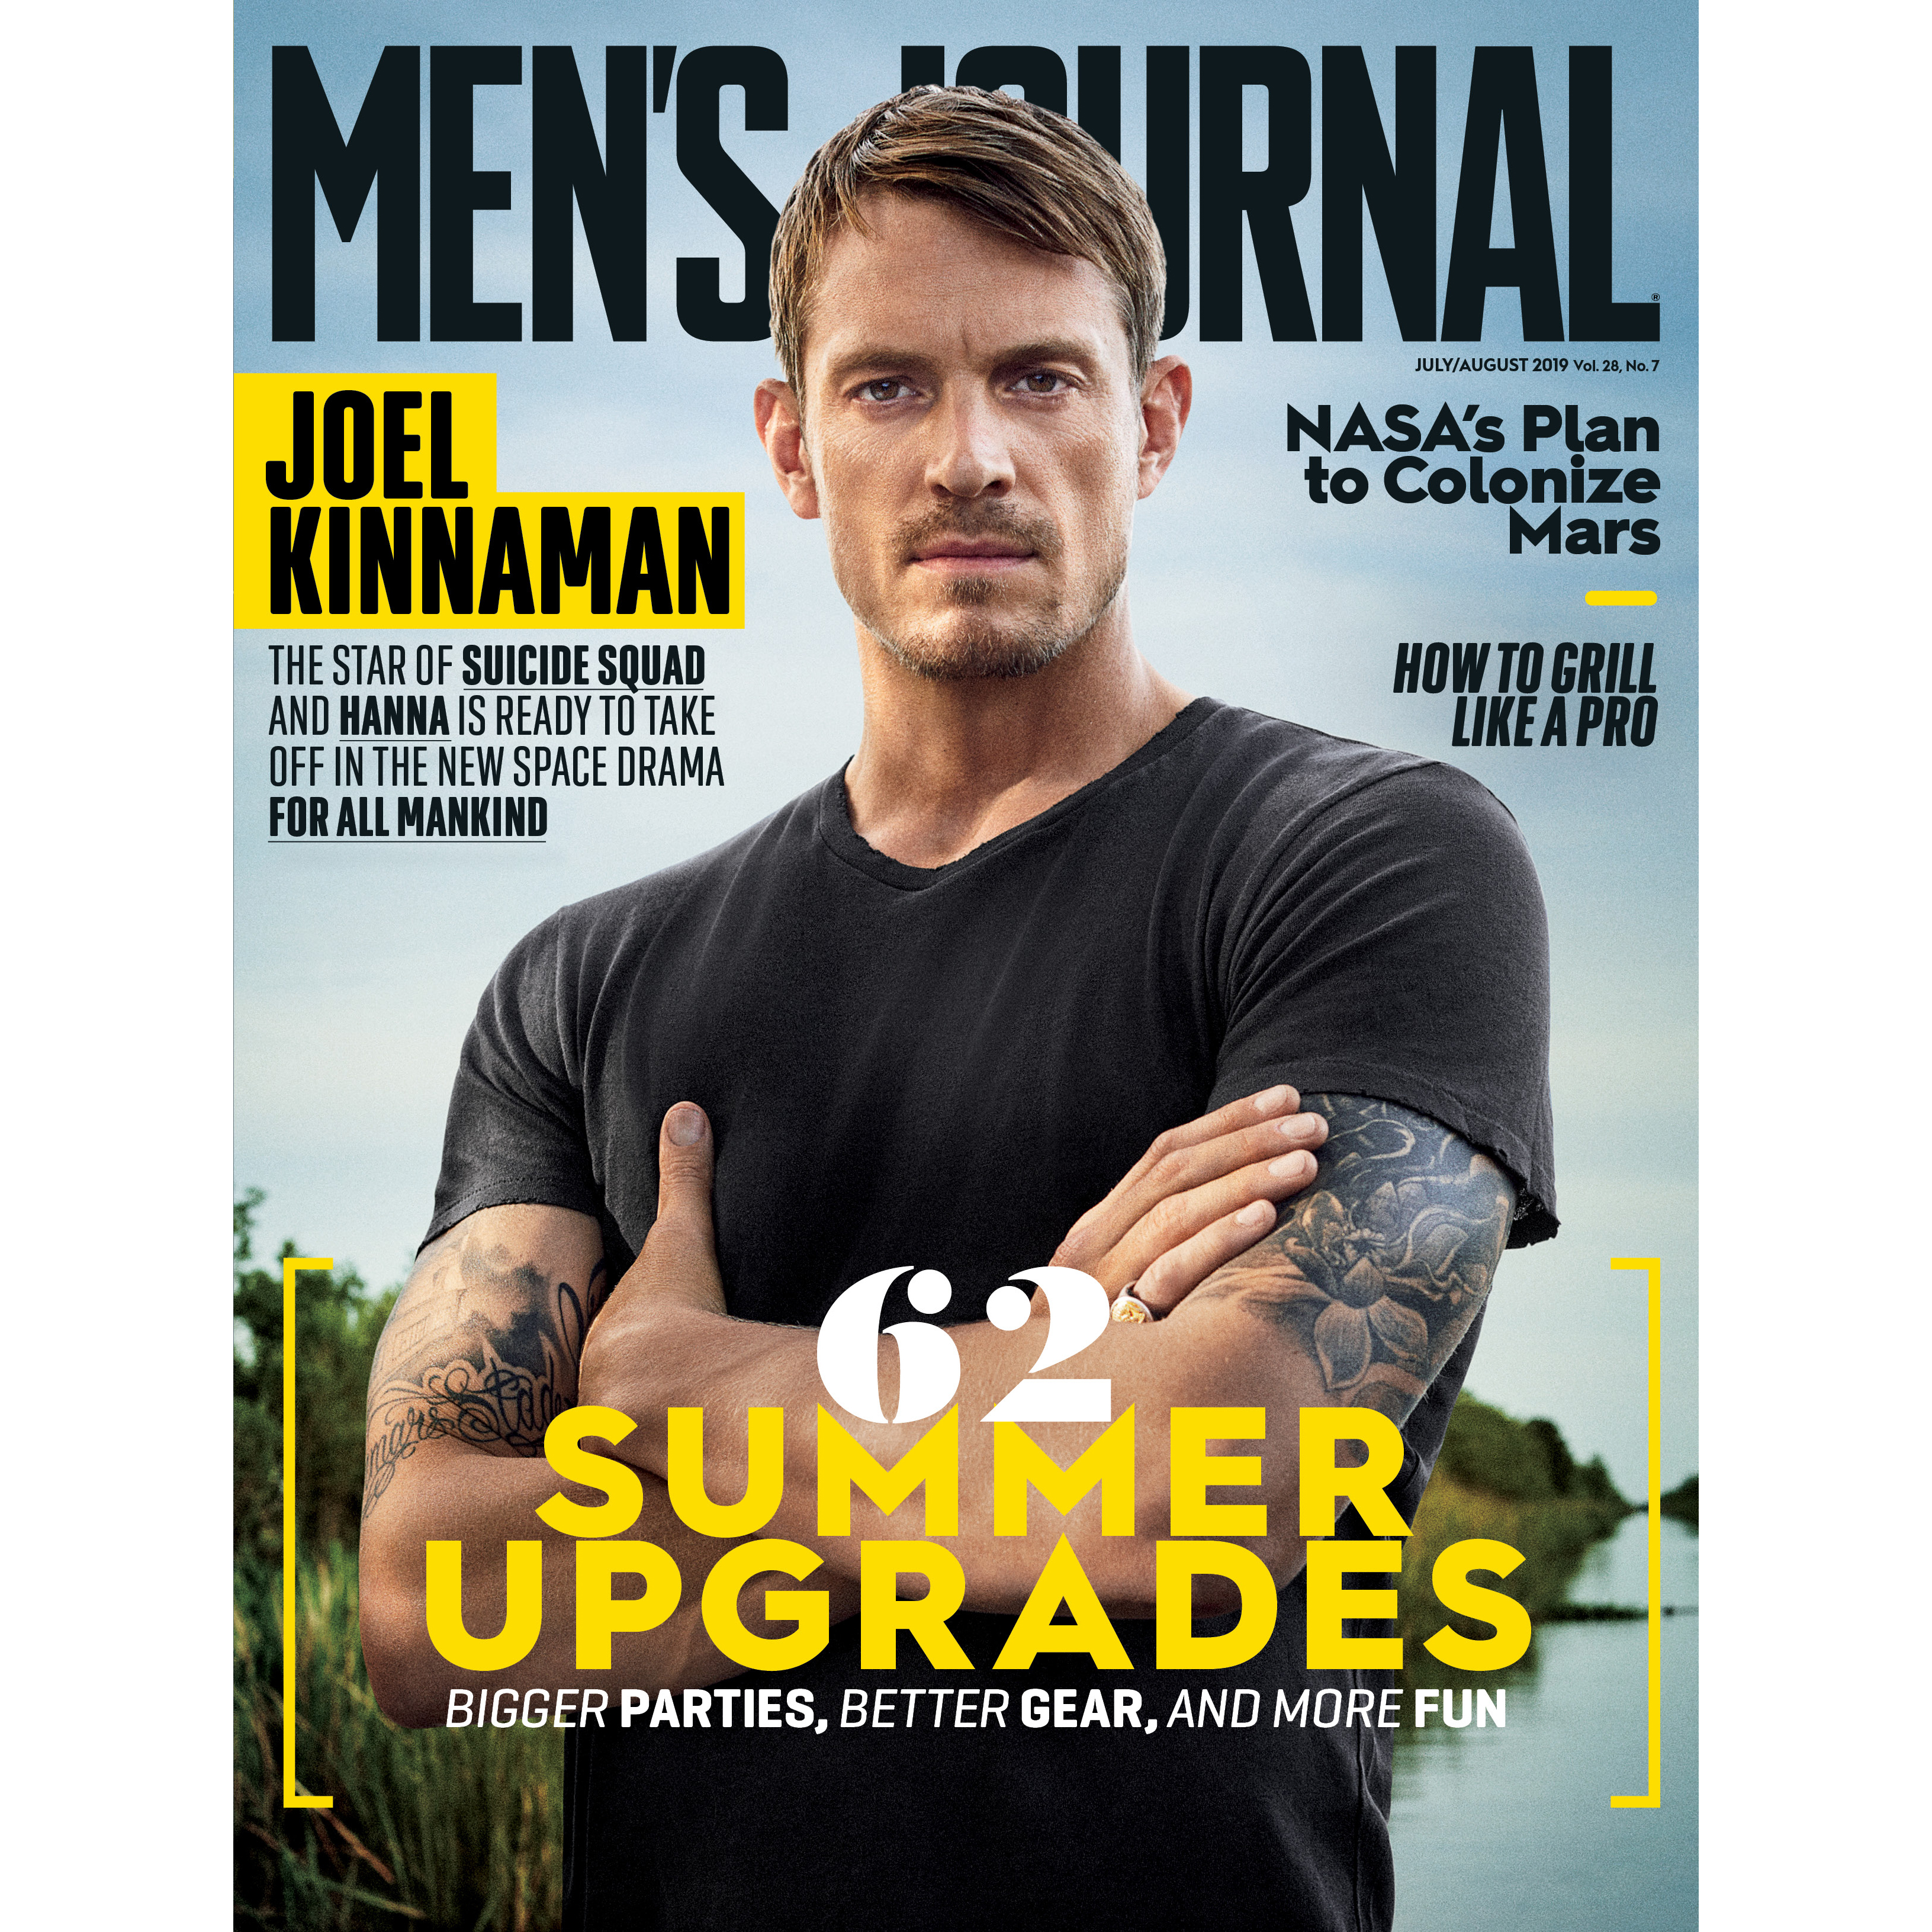 mens-journal-cover-july-august-cover